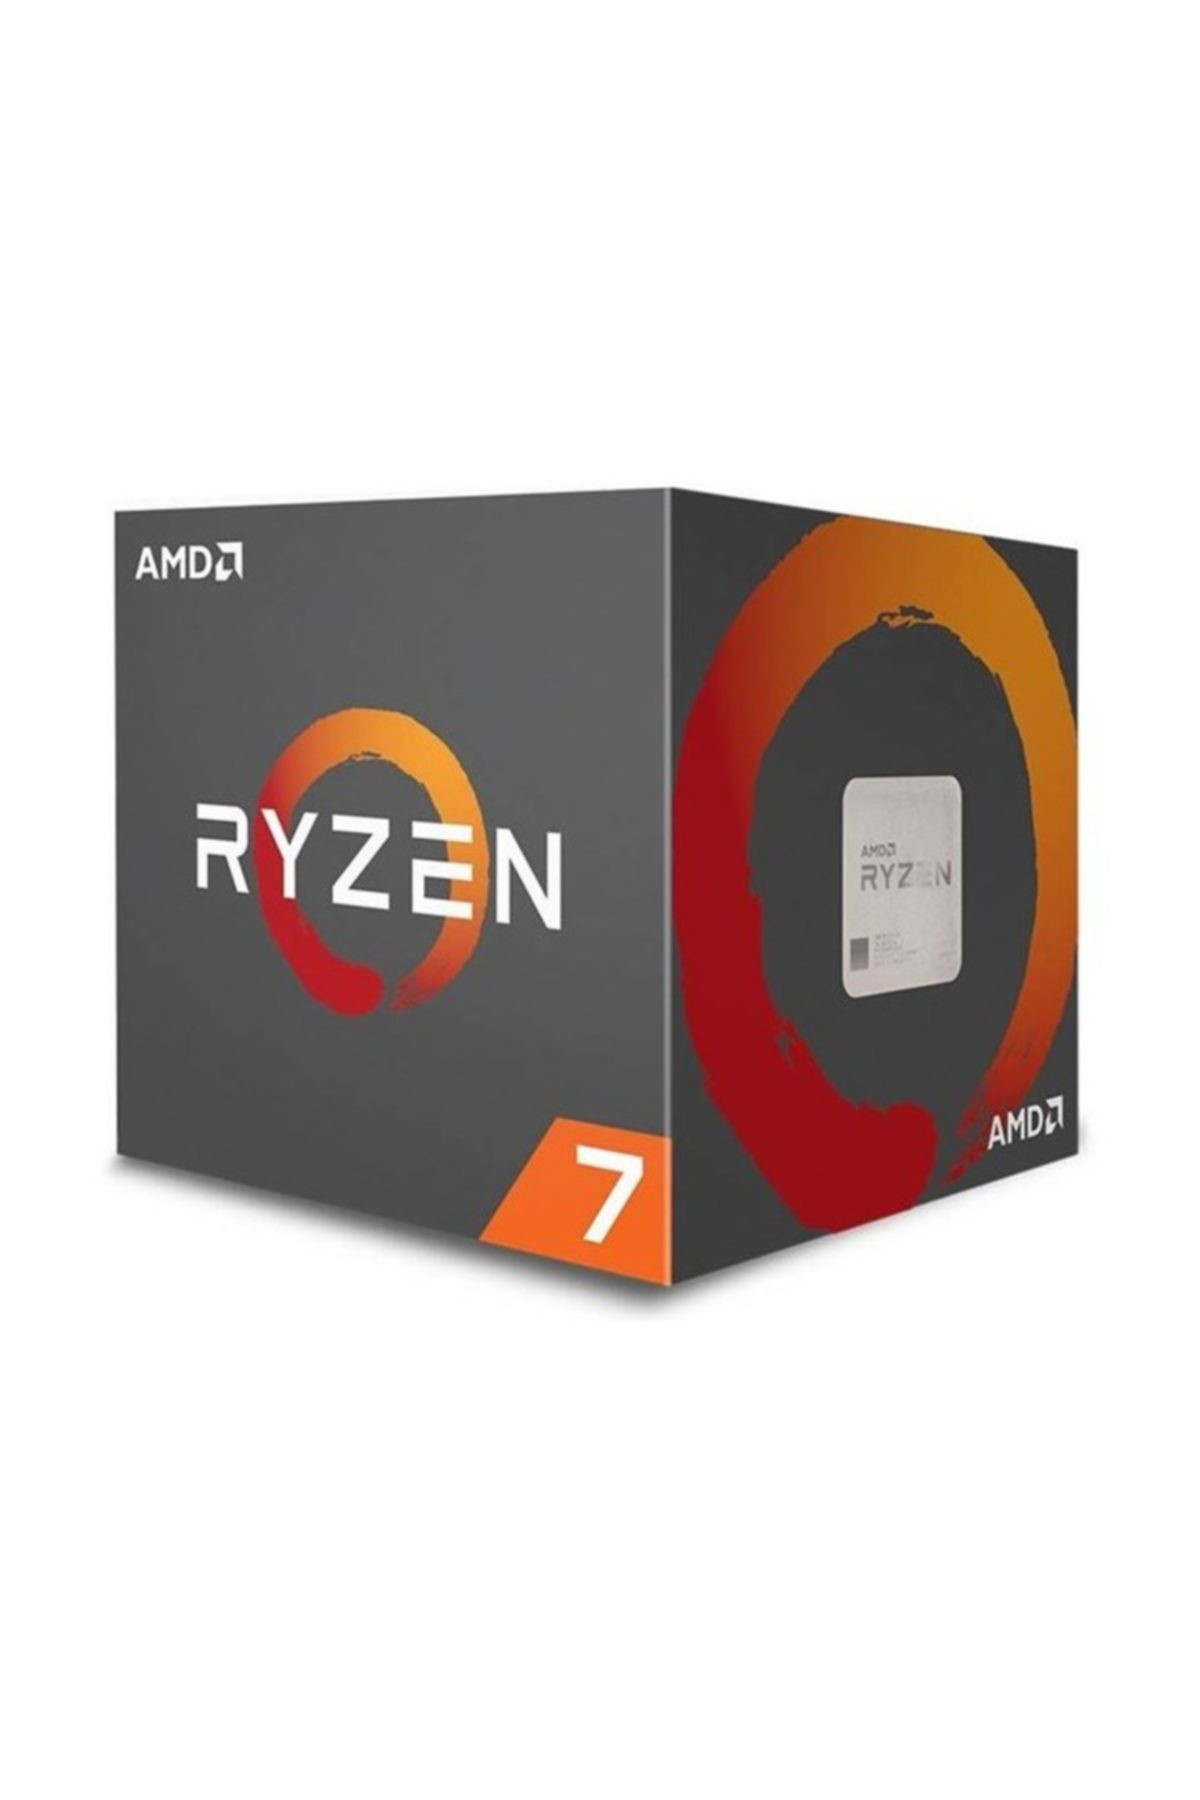 Amd Ryzen 7 2700X 3.7GHz/4.3GHz AM4 1